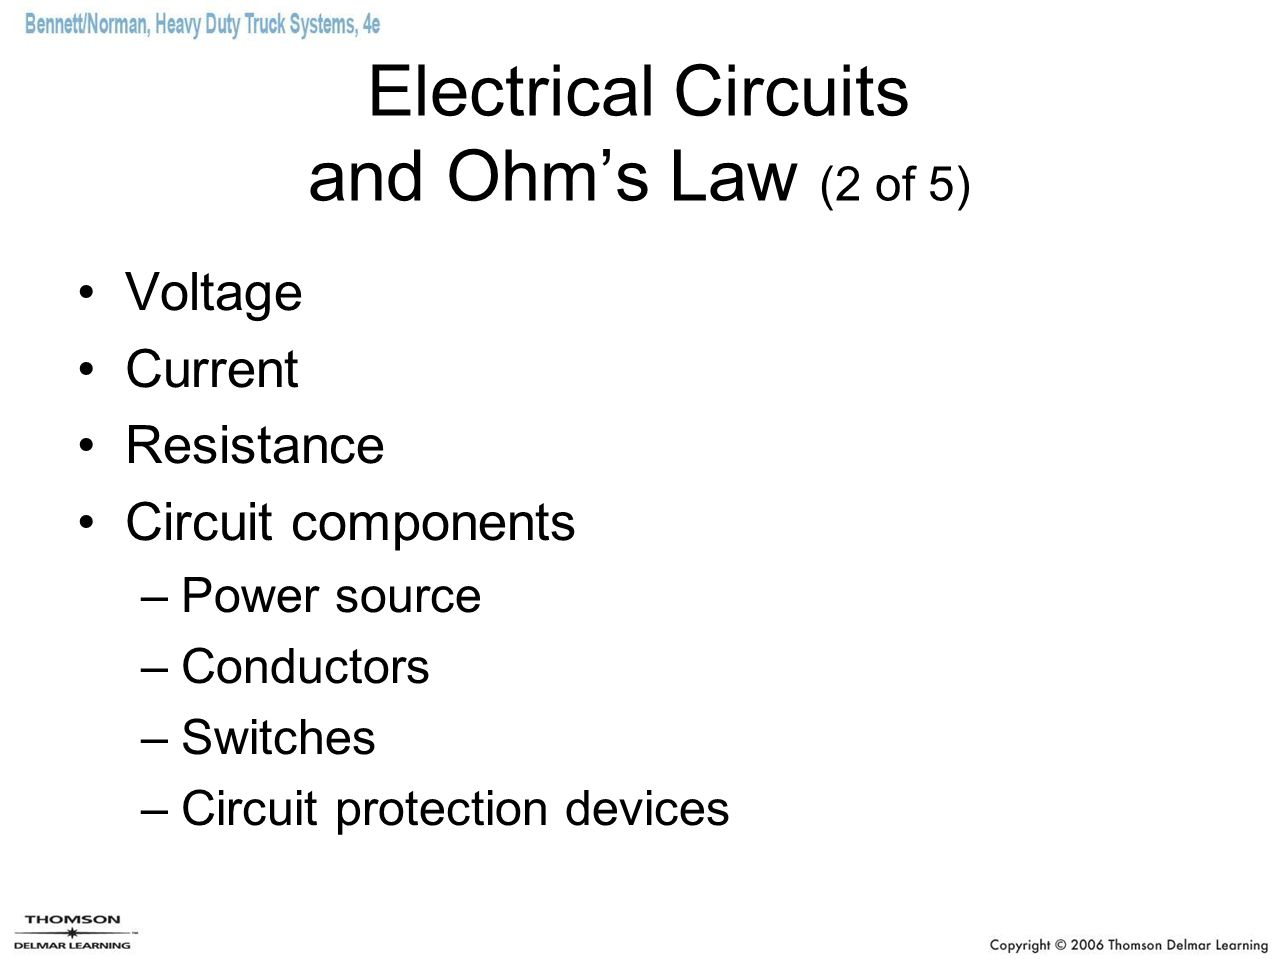 Electrical Circuits and Ohm's Law (2 of 5)